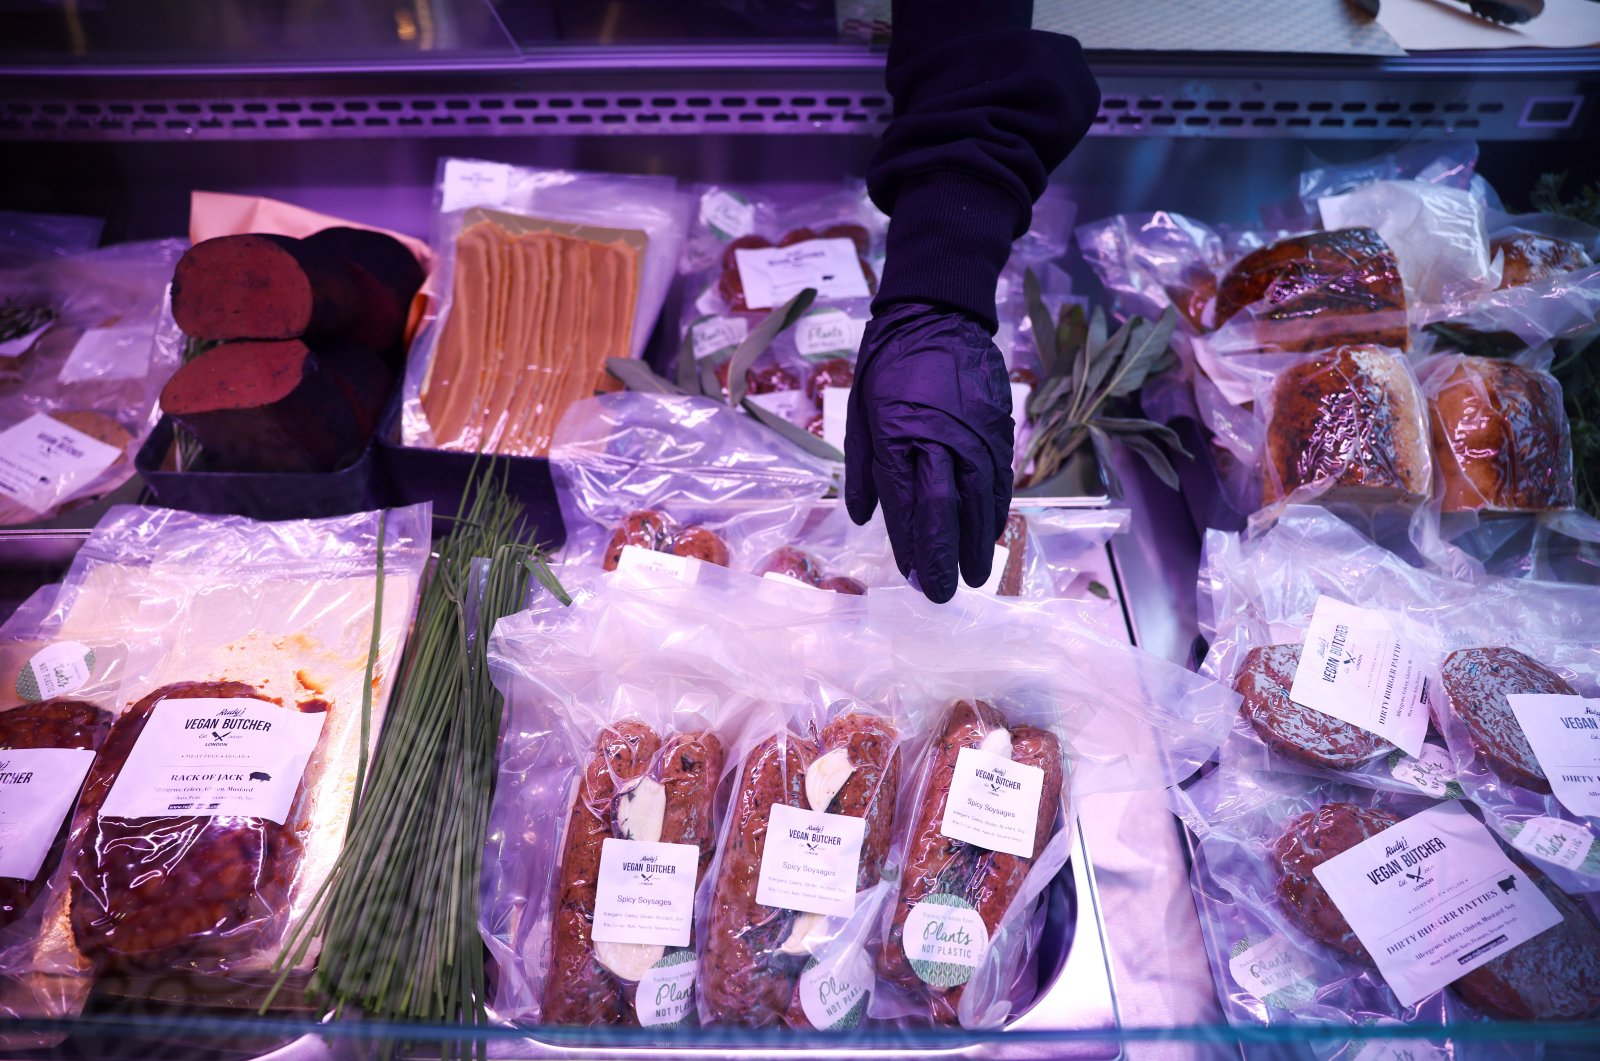 """Food products are seen on display inside """"Rudy's Vegan Butcher"""" shop, amid the coronavirus outbreak, in London, Britain, Oct. 30, 2020. (Reuters Photo)"""